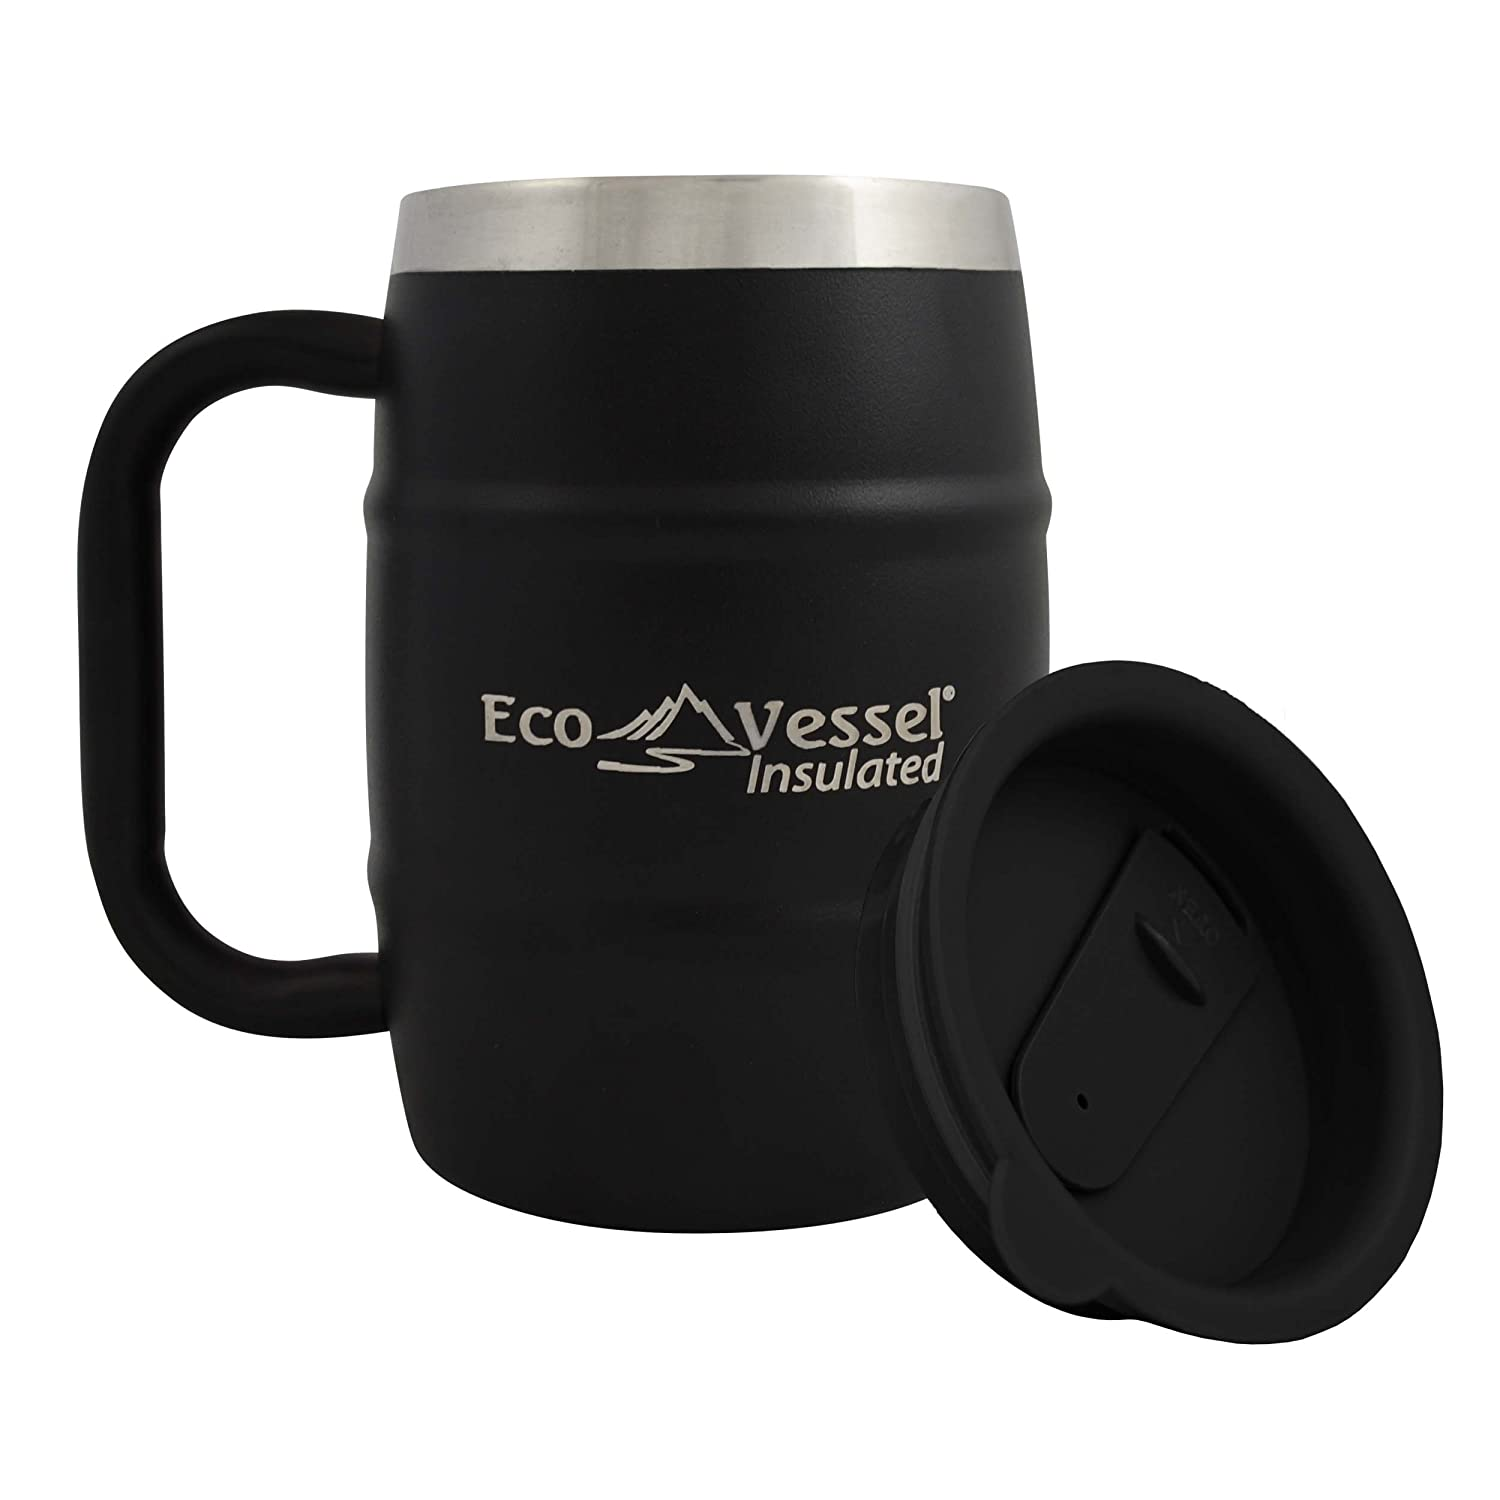 d238378dc24 Eco Vessel Double Barrel mug is the first in our list of best mugs to keep  coffee hot. It is there because of: